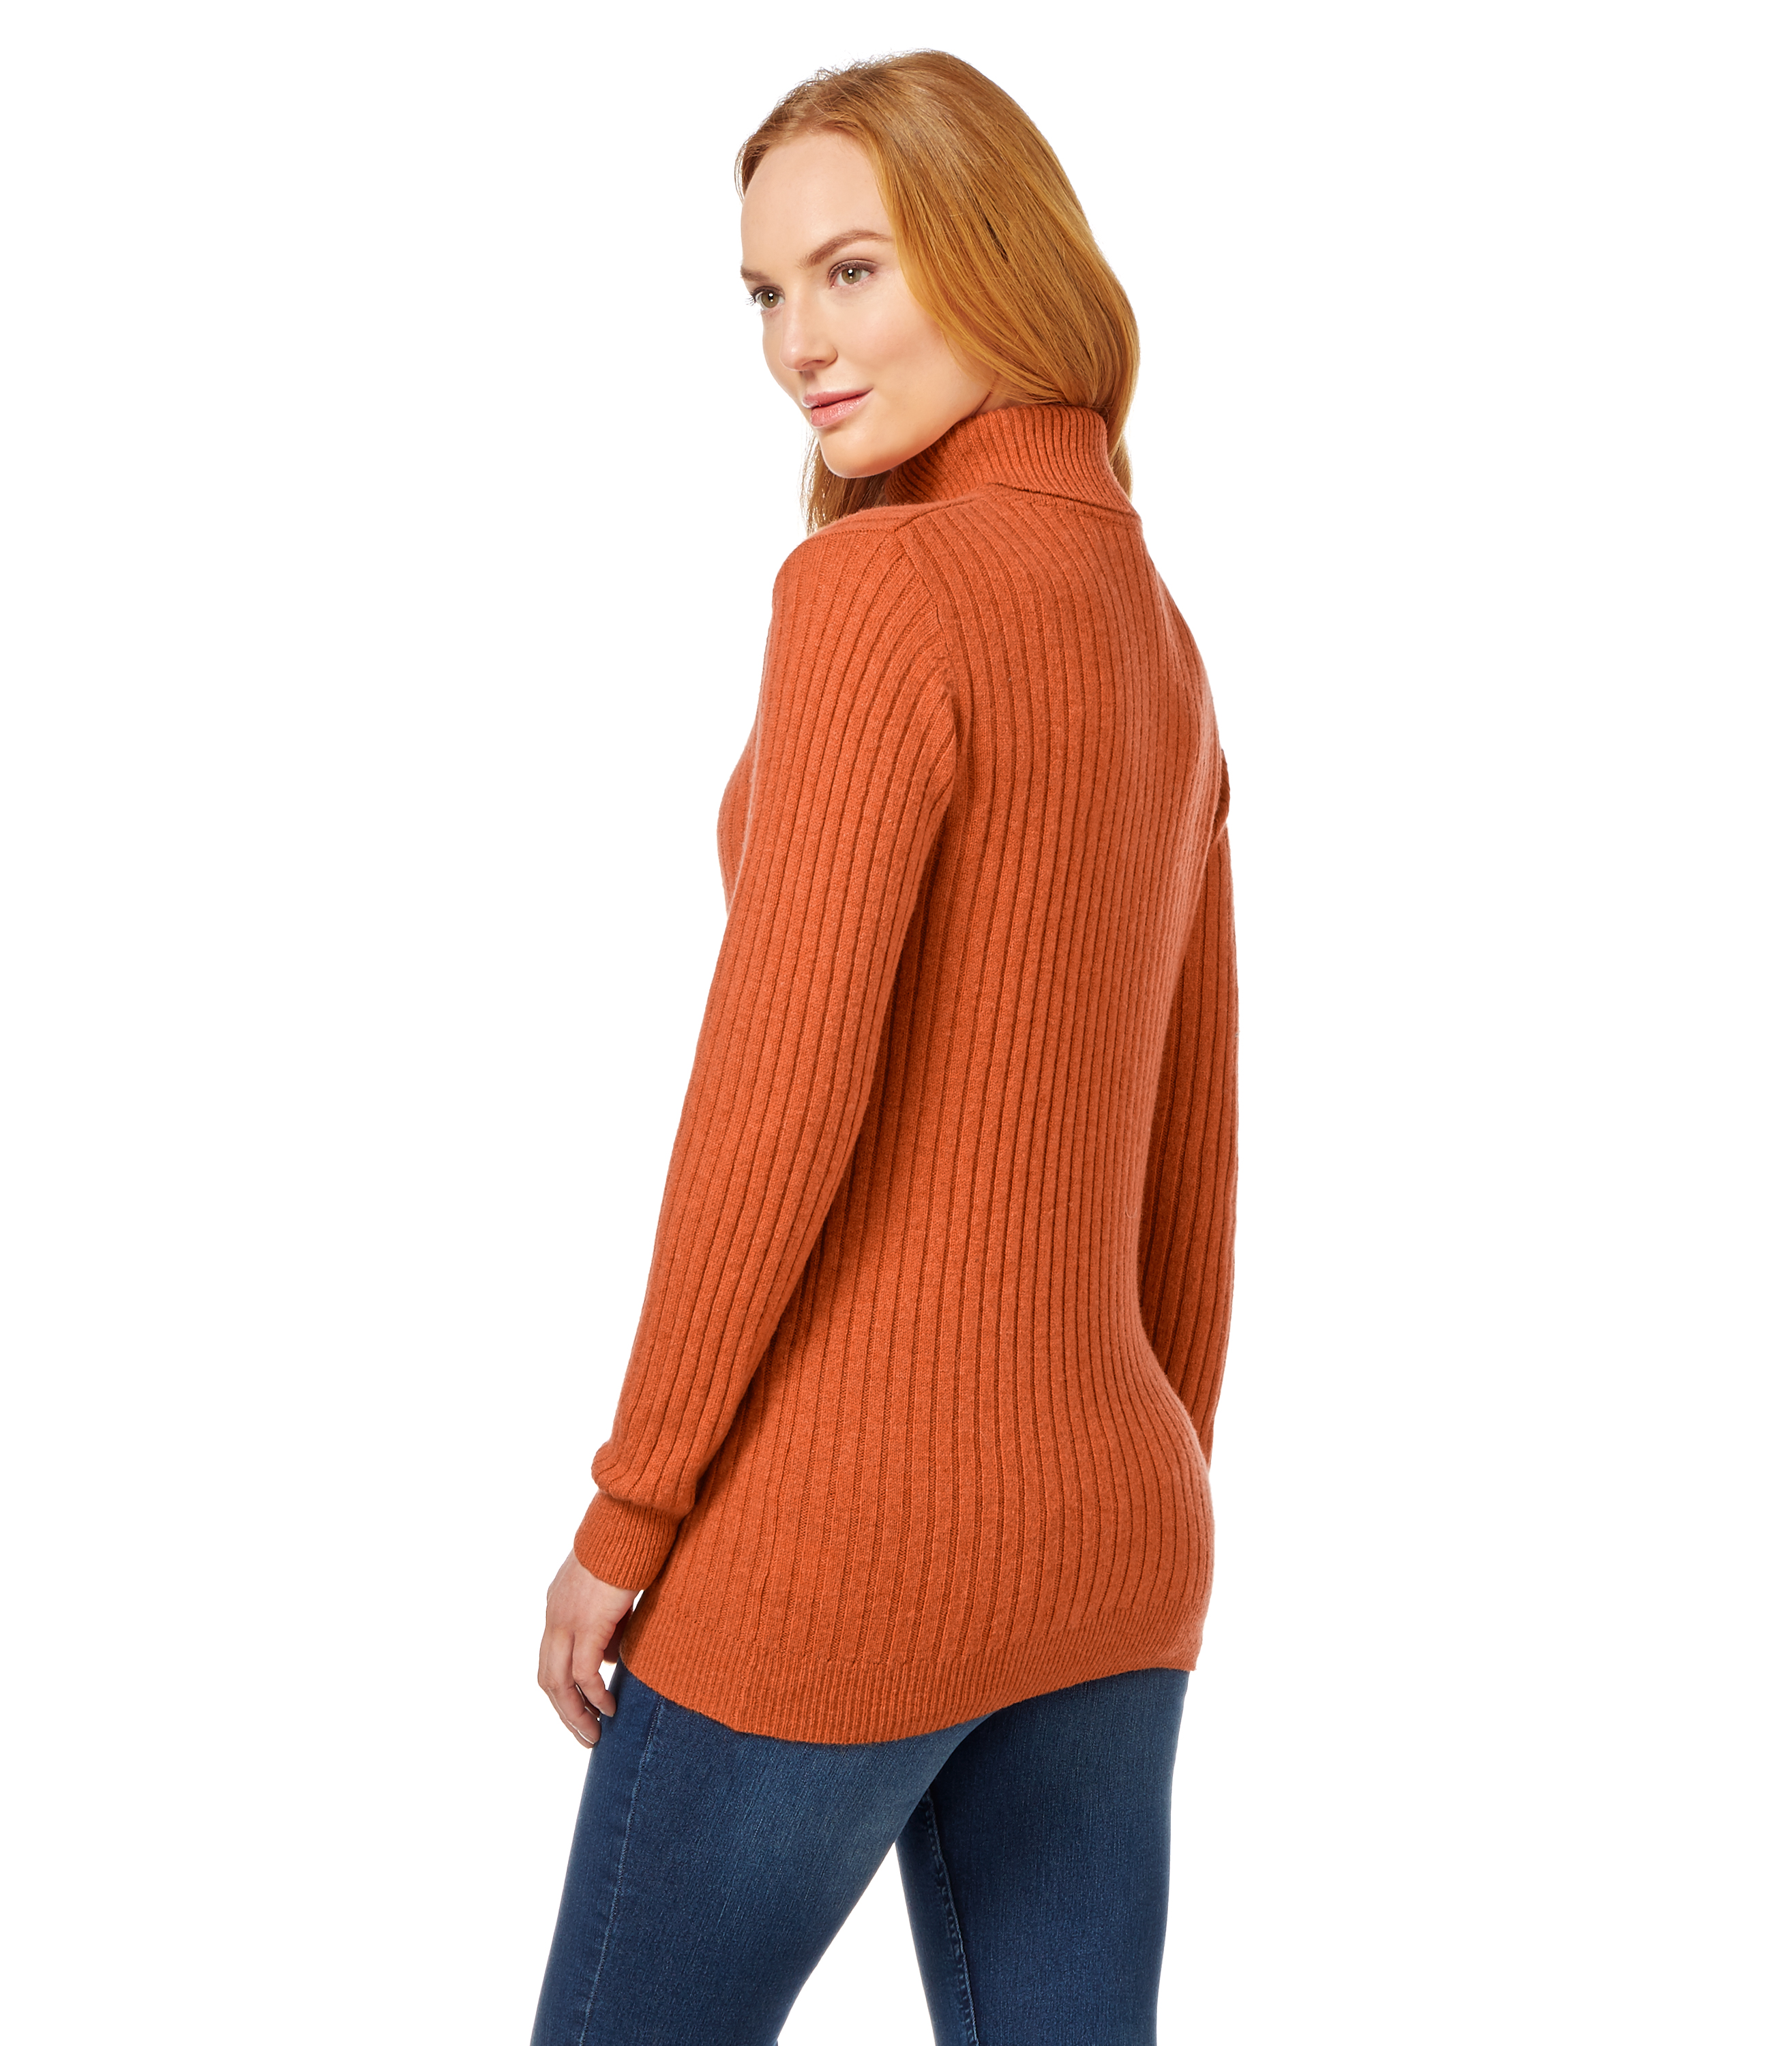 The Edinburgh Woollen Mill range of knitwear, featuring the latest men's and women's jumpers and cardigans made from the finest materials.